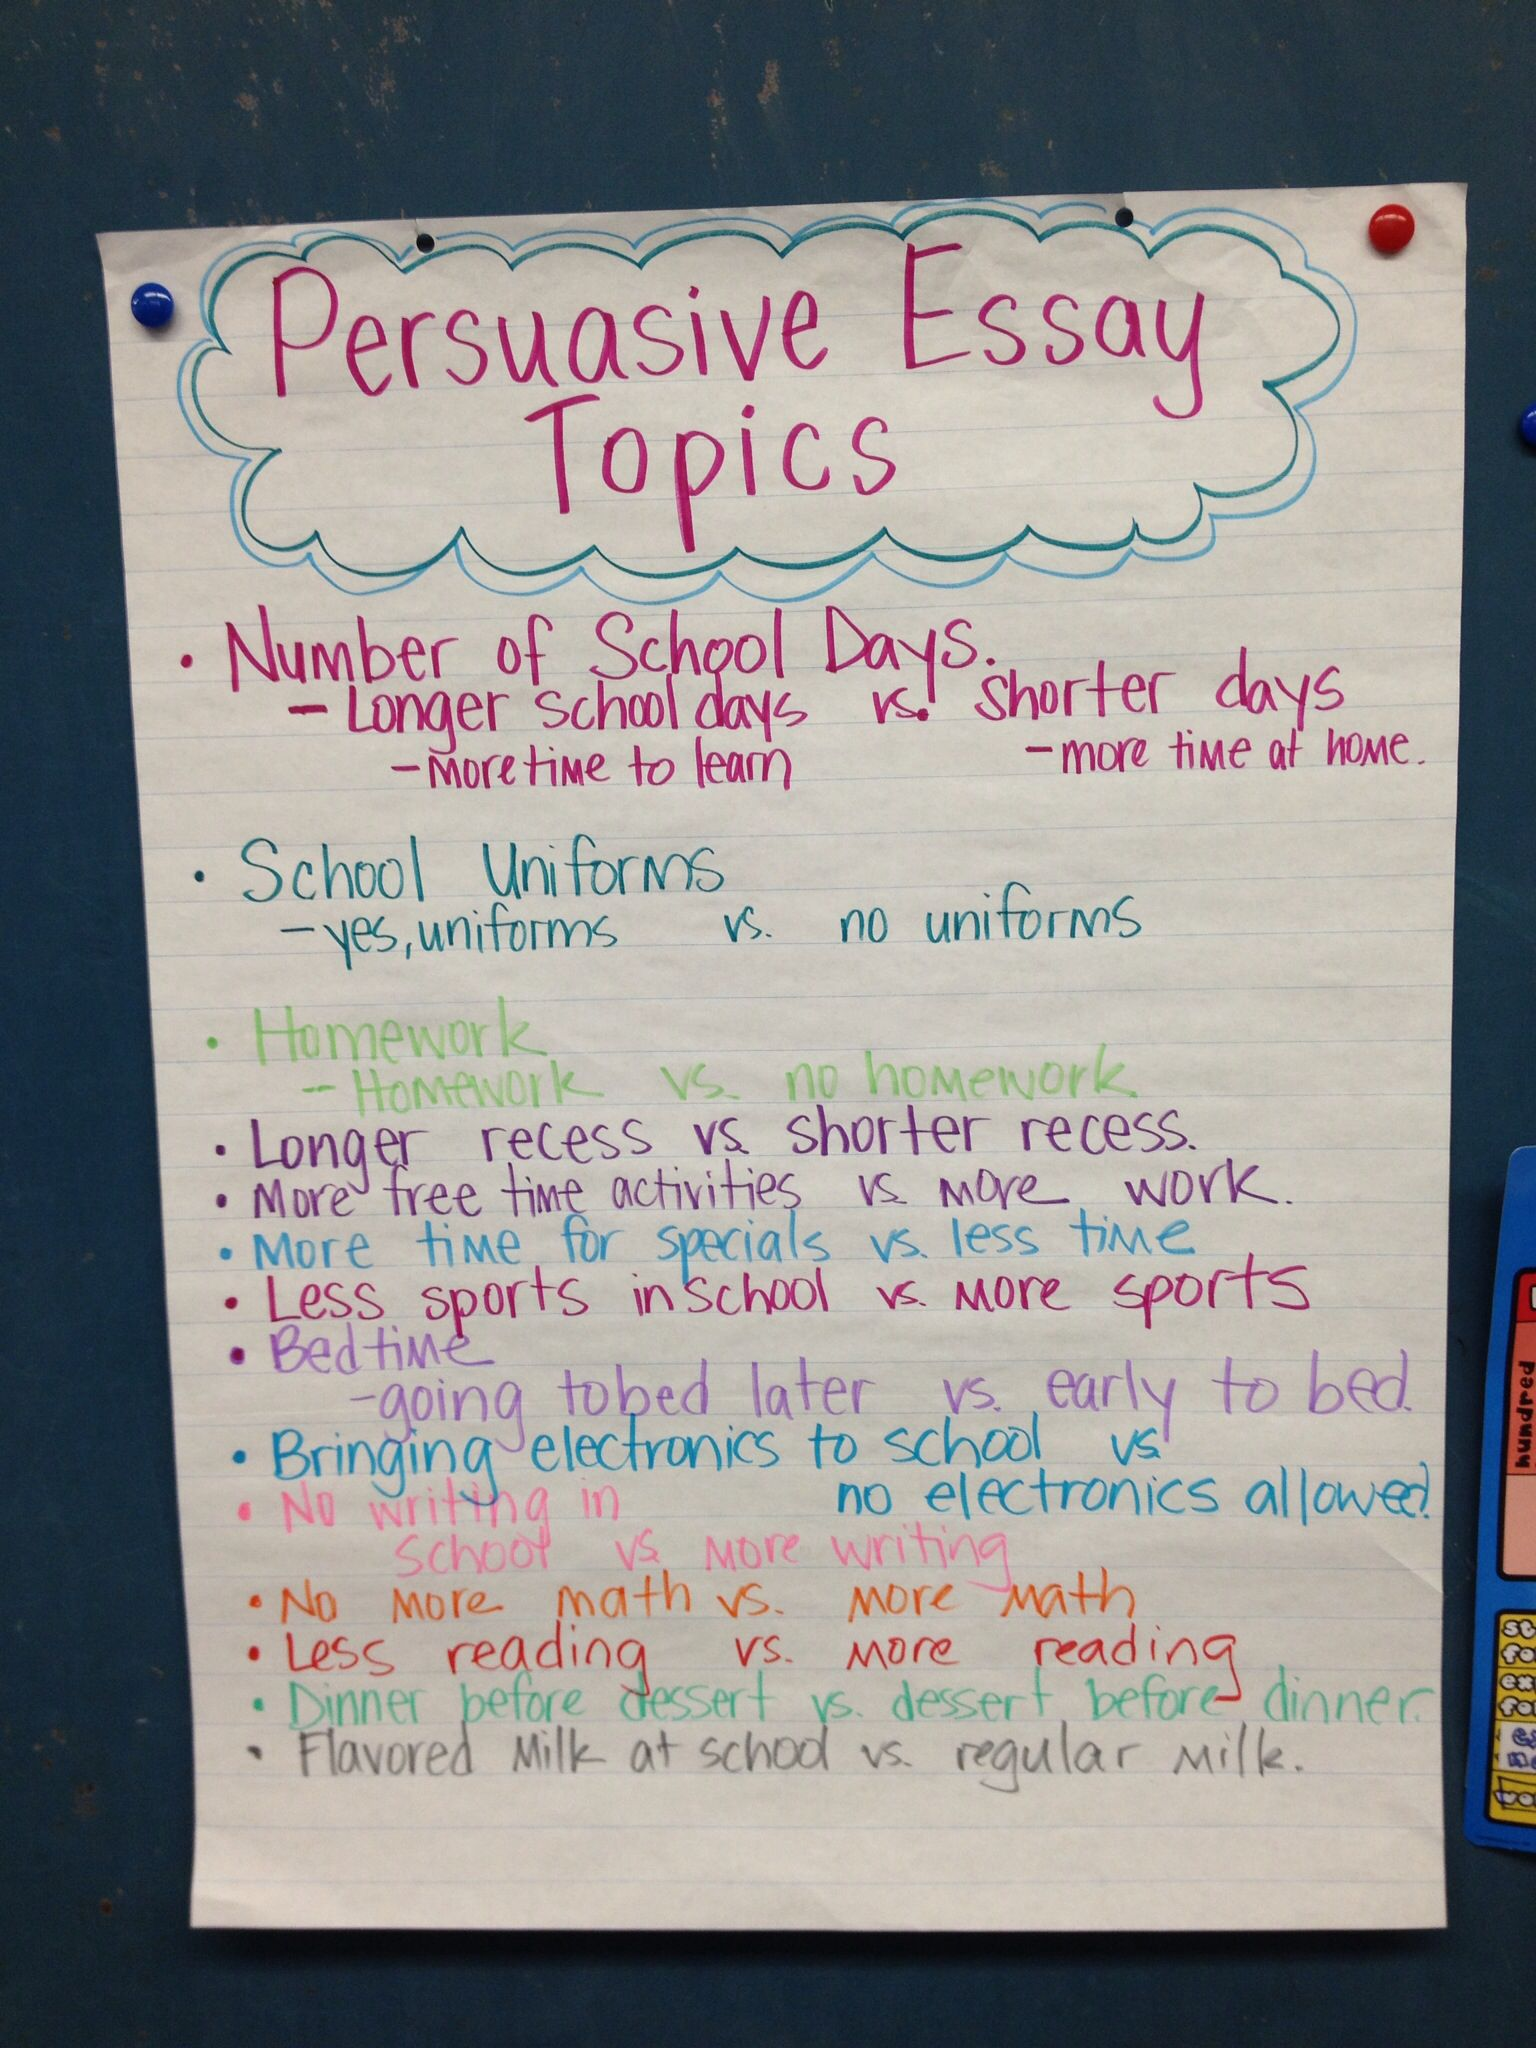 Persuasive Essay Topics With Images